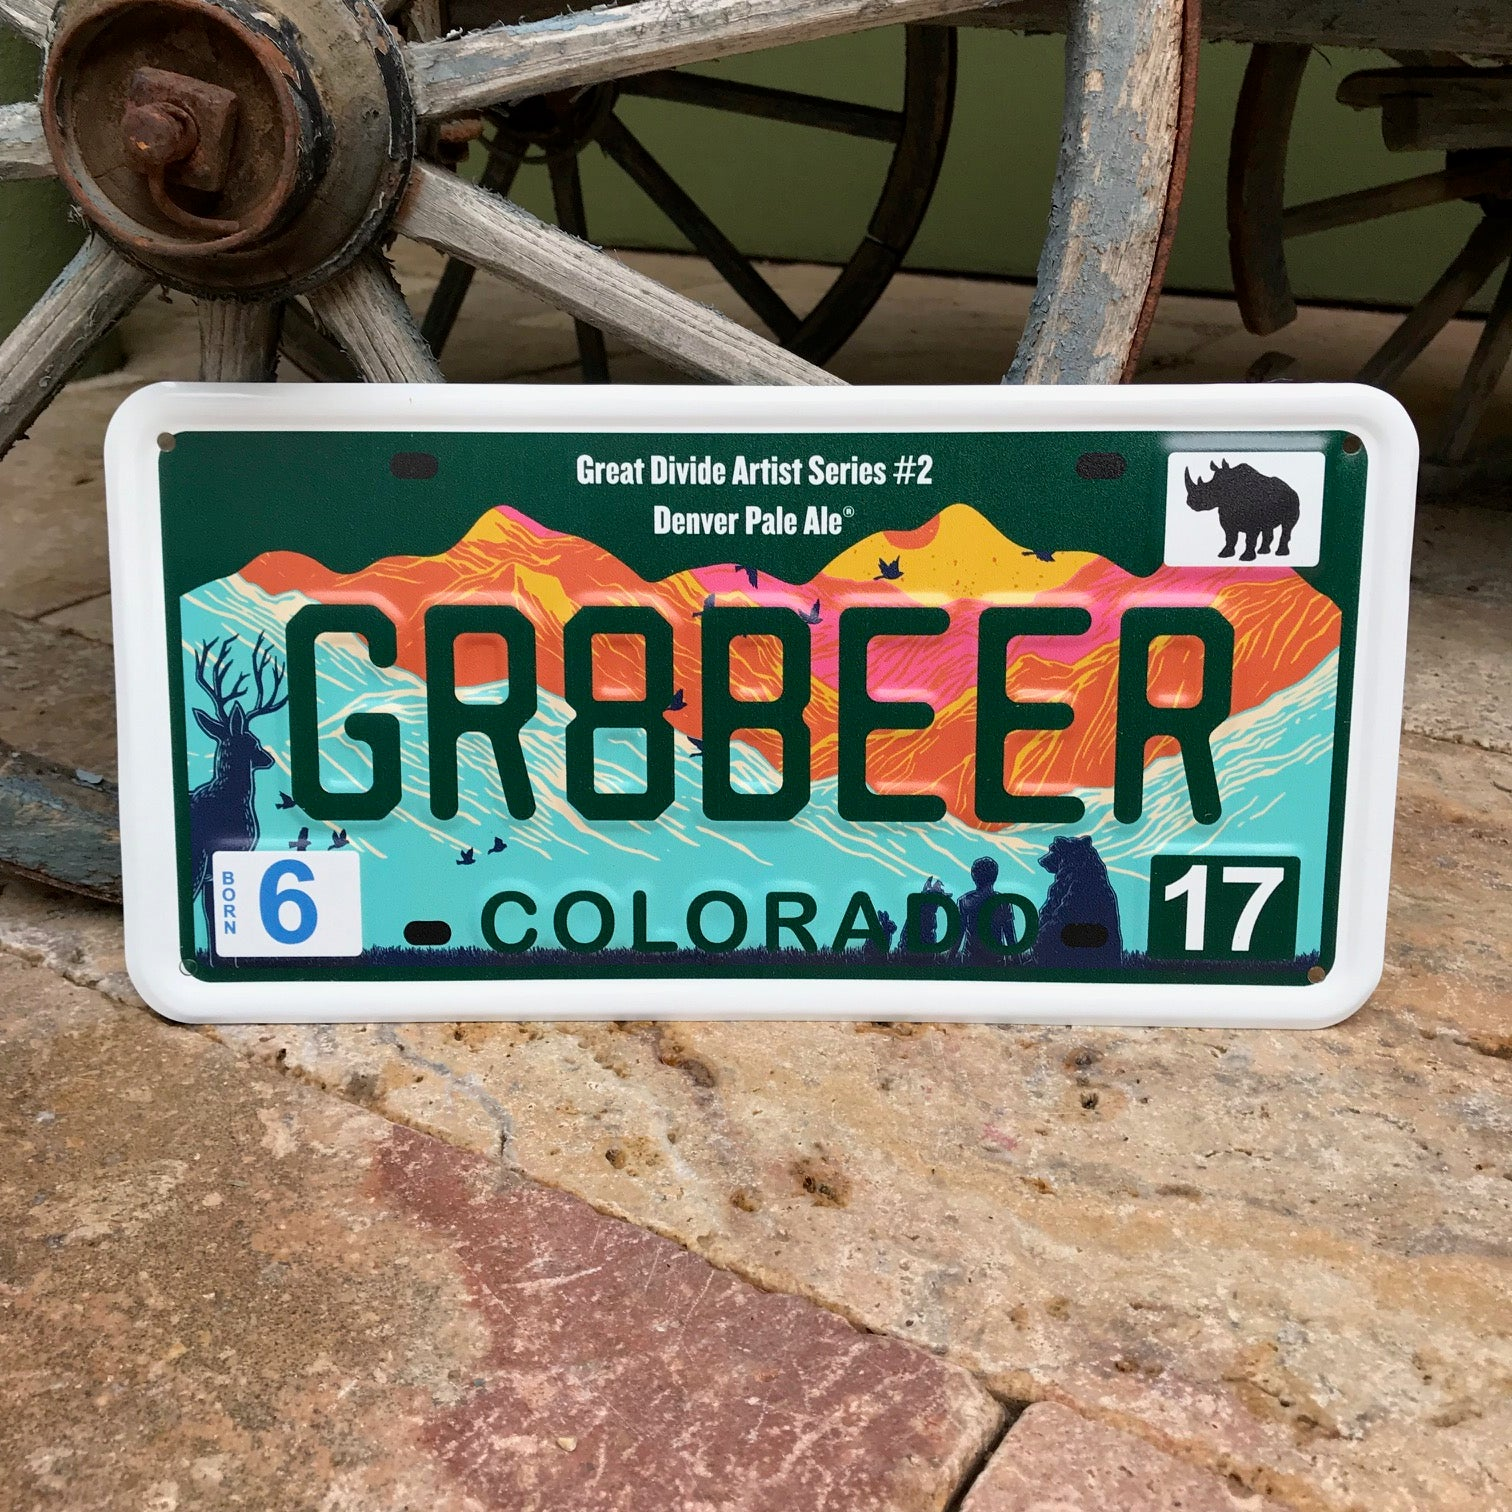 Denver Motor Vehicle License Plates